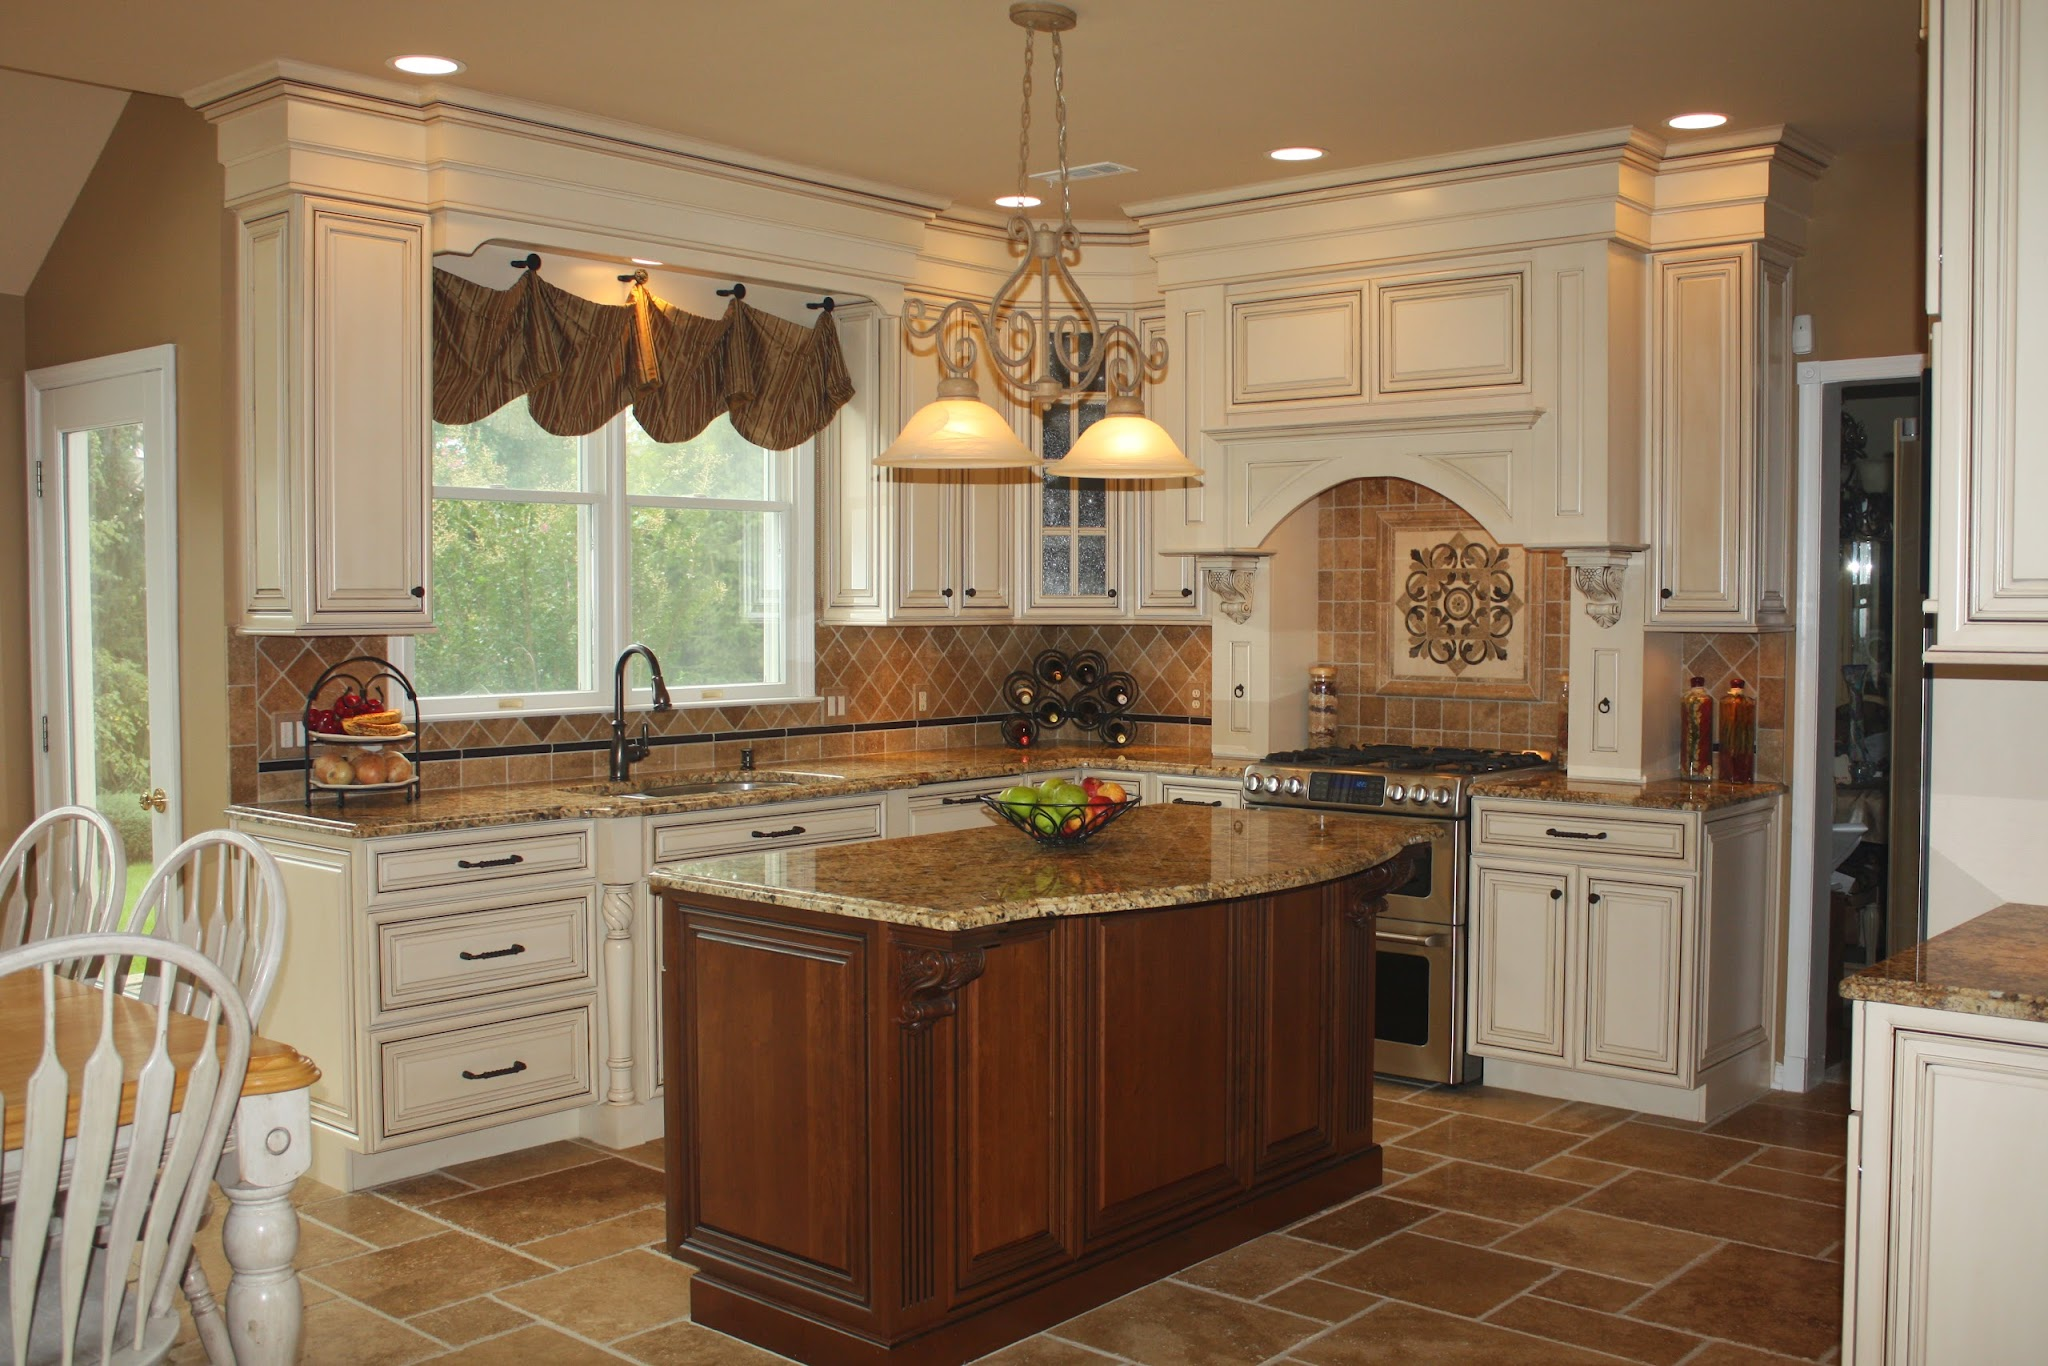 Houzz kitchen dreams house furniture for Kitchen remodel photos